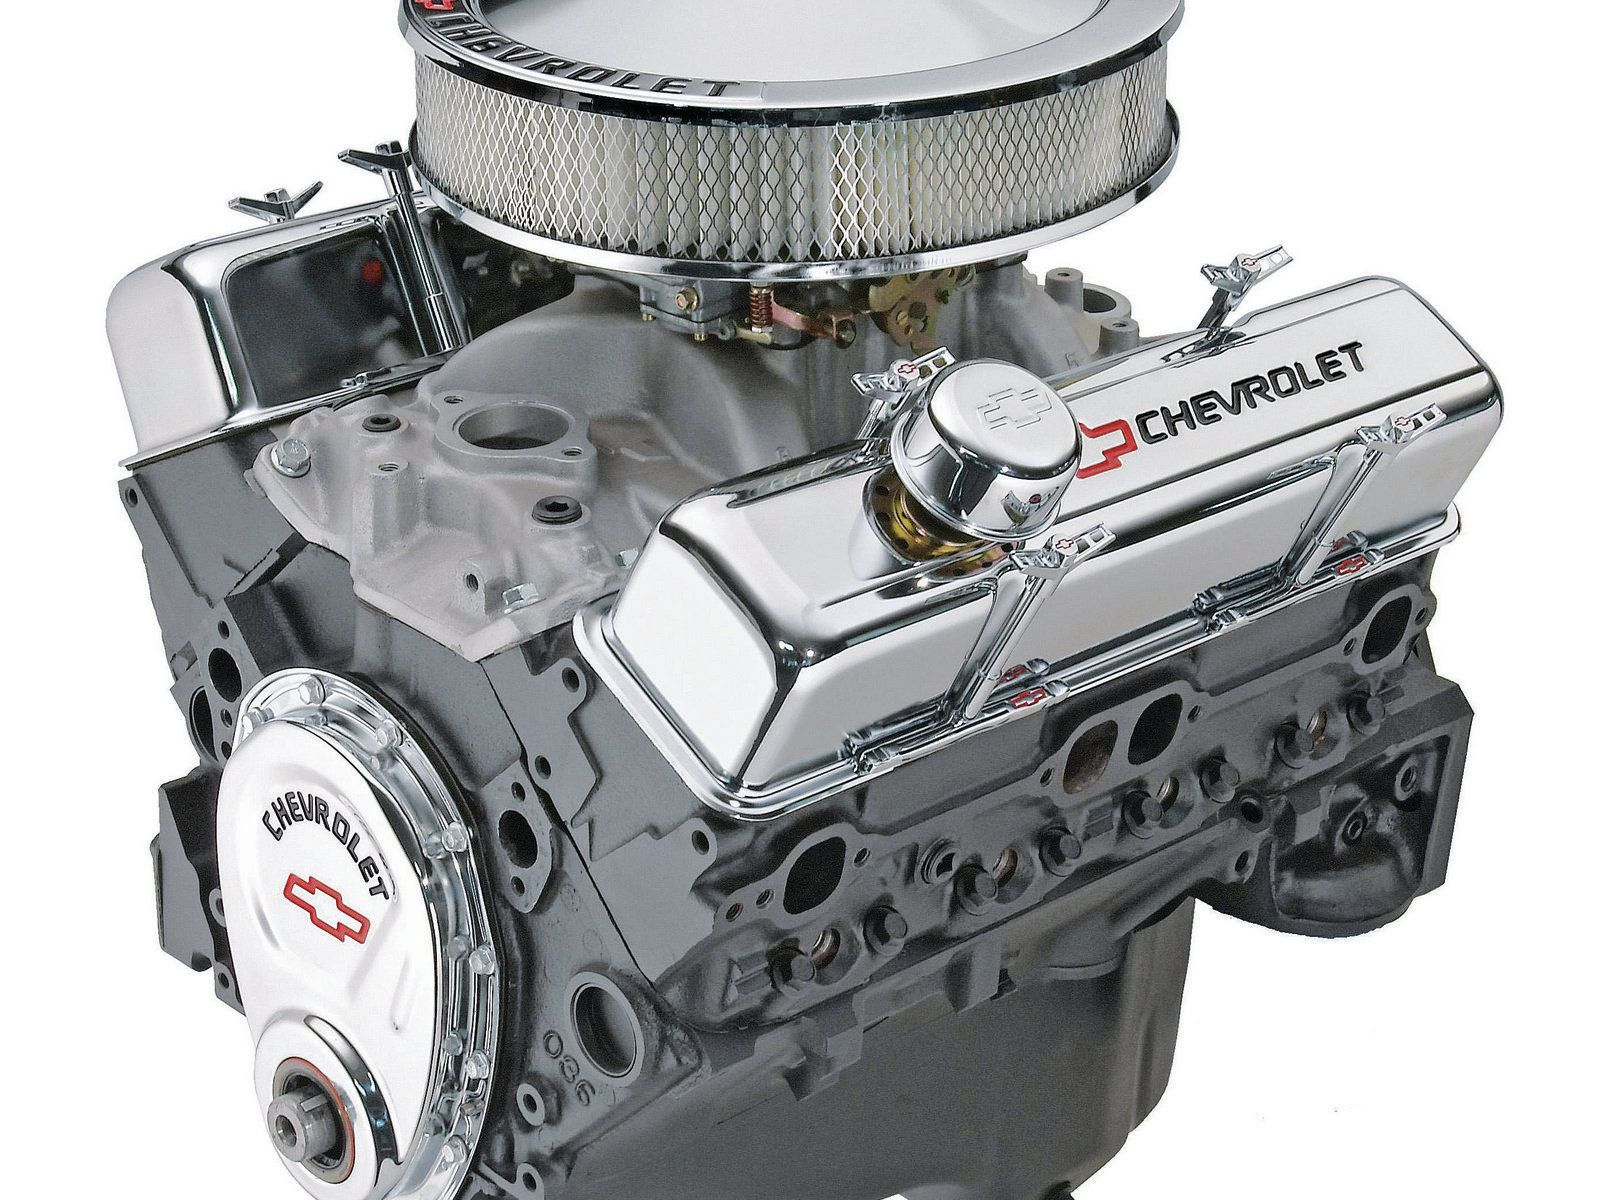 Perfect GM Auto Parts Online | Corpus Christi Allen Samuels Chevrolet GM Parts  Online Is Your One Stop Shopping Destination For GM Performance Parts And  GM ...